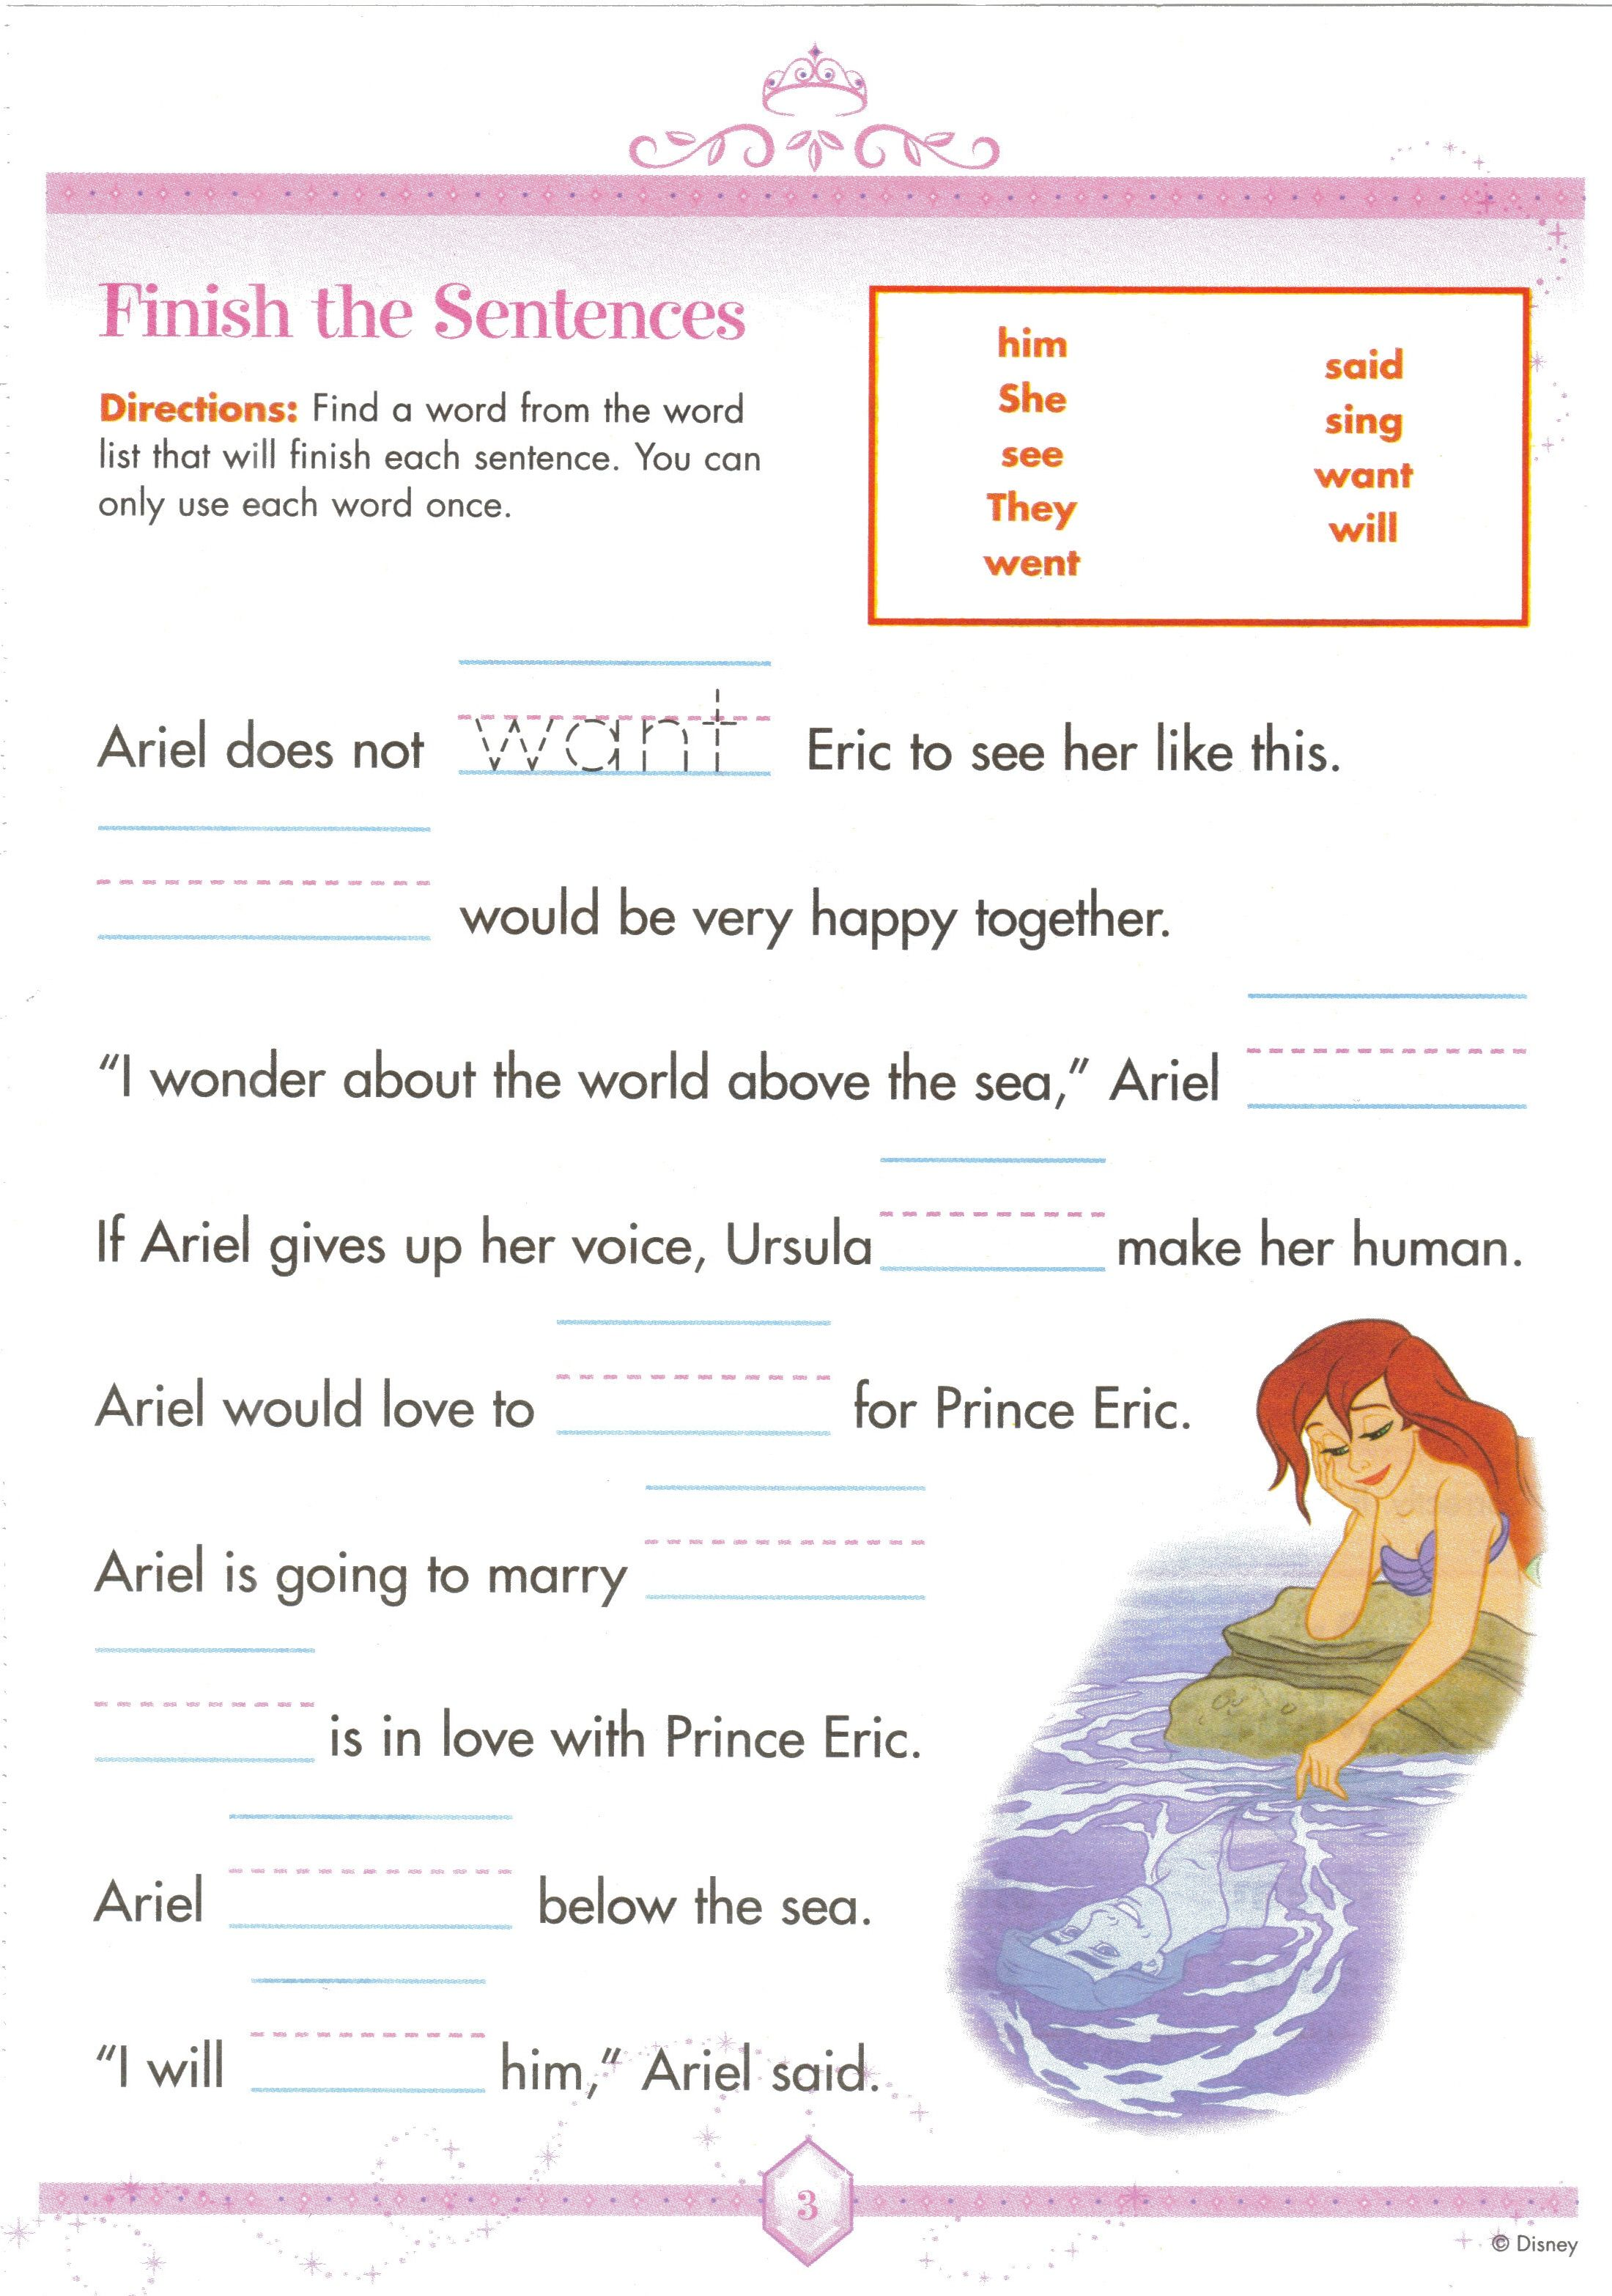 Weirdmailus  Terrific  Images About Educational Disney On Pinterest  Worksheets  With Engaging  Images About Educational Disney On Pinterest  Worksheets Disney And Math Activities With Beautiful Houghton Mifflin Math Grade  Worksheets Also Logic Gates Worksheets In Addition Their And There Worksheet And Worksheet On Work As Well As Fourth Grade Reading Comprehension Worksheet Additionally Chinese Cinderella Worksheets From Pinterestcom With Weirdmailus  Engaging  Images About Educational Disney On Pinterest  Worksheets  With Beautiful  Images About Educational Disney On Pinterest  Worksheets Disney And Math Activities And Terrific Houghton Mifflin Math Grade  Worksheets Also Logic Gates Worksheets In Addition Their And There Worksheet From Pinterestcom